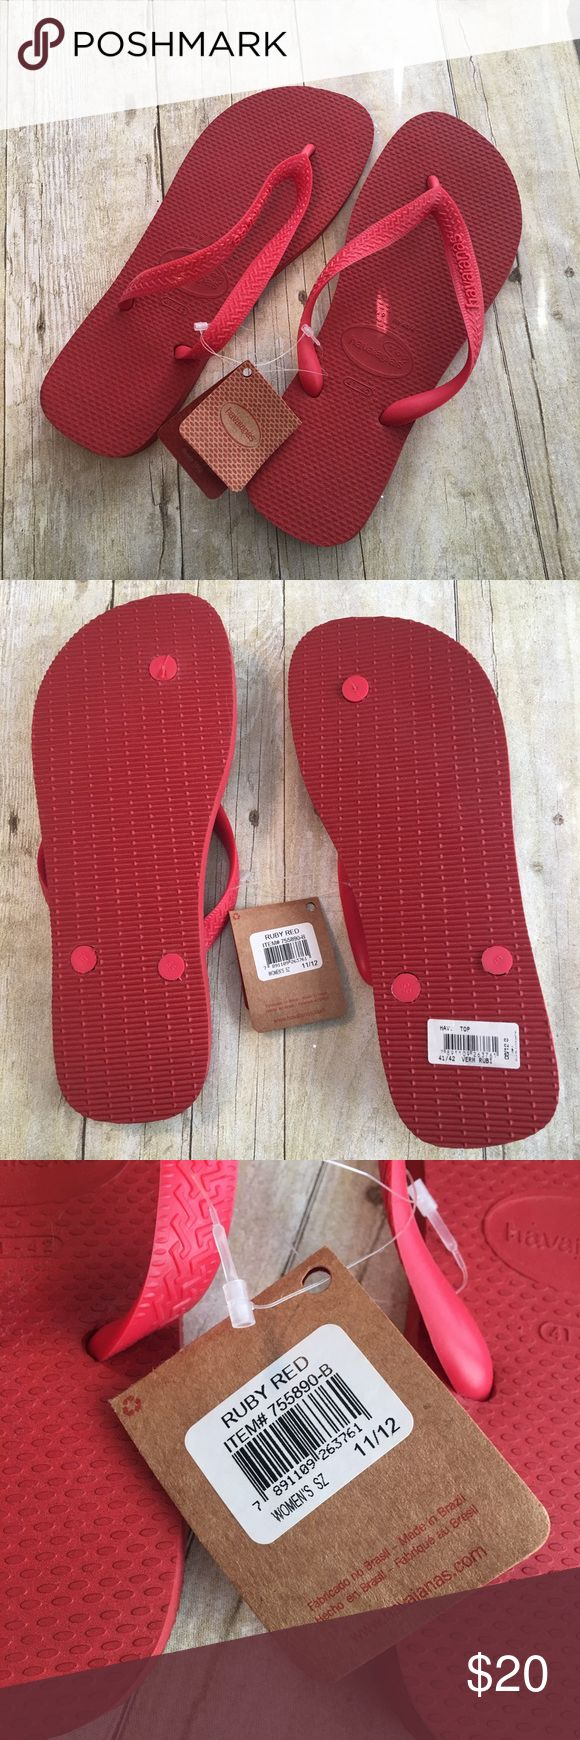 Havaianas Top Flip Flops Bring on the heat! You'll be ready to take on the blazing weather in these ruby red sandals. Rubber upper and sole provides a cushioned footbed. Never worn, still with tags. Thank you for visiting my closet! Havaianas Shoes Sandals